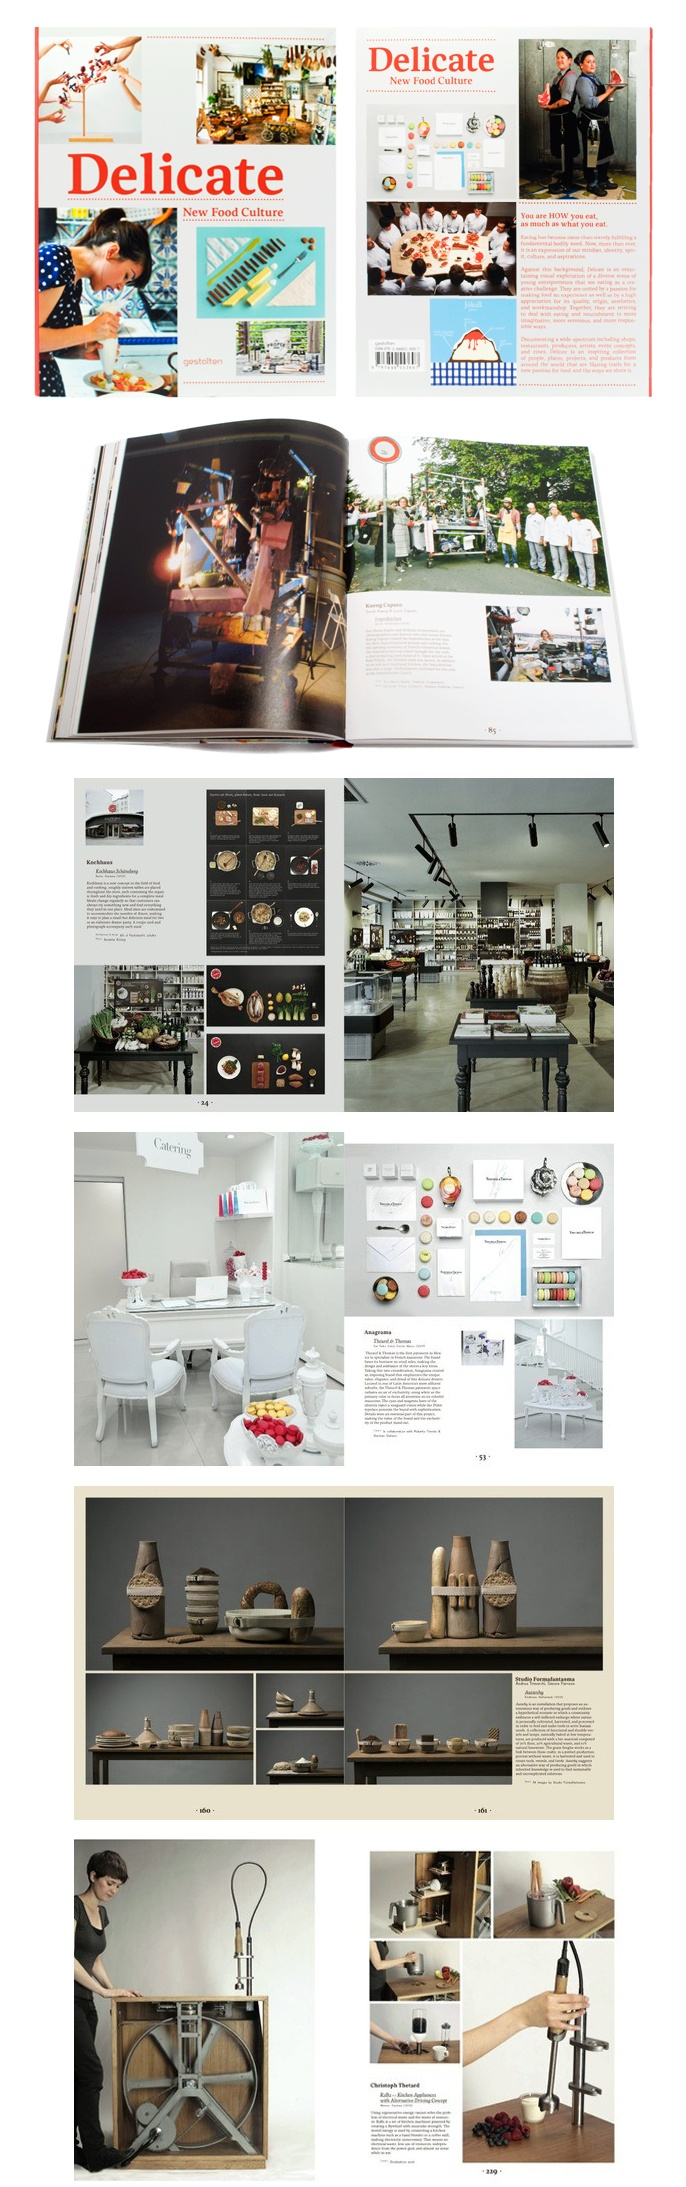 Delicate. New Food Culture - 精緻的新食文化:ARTIFACTS